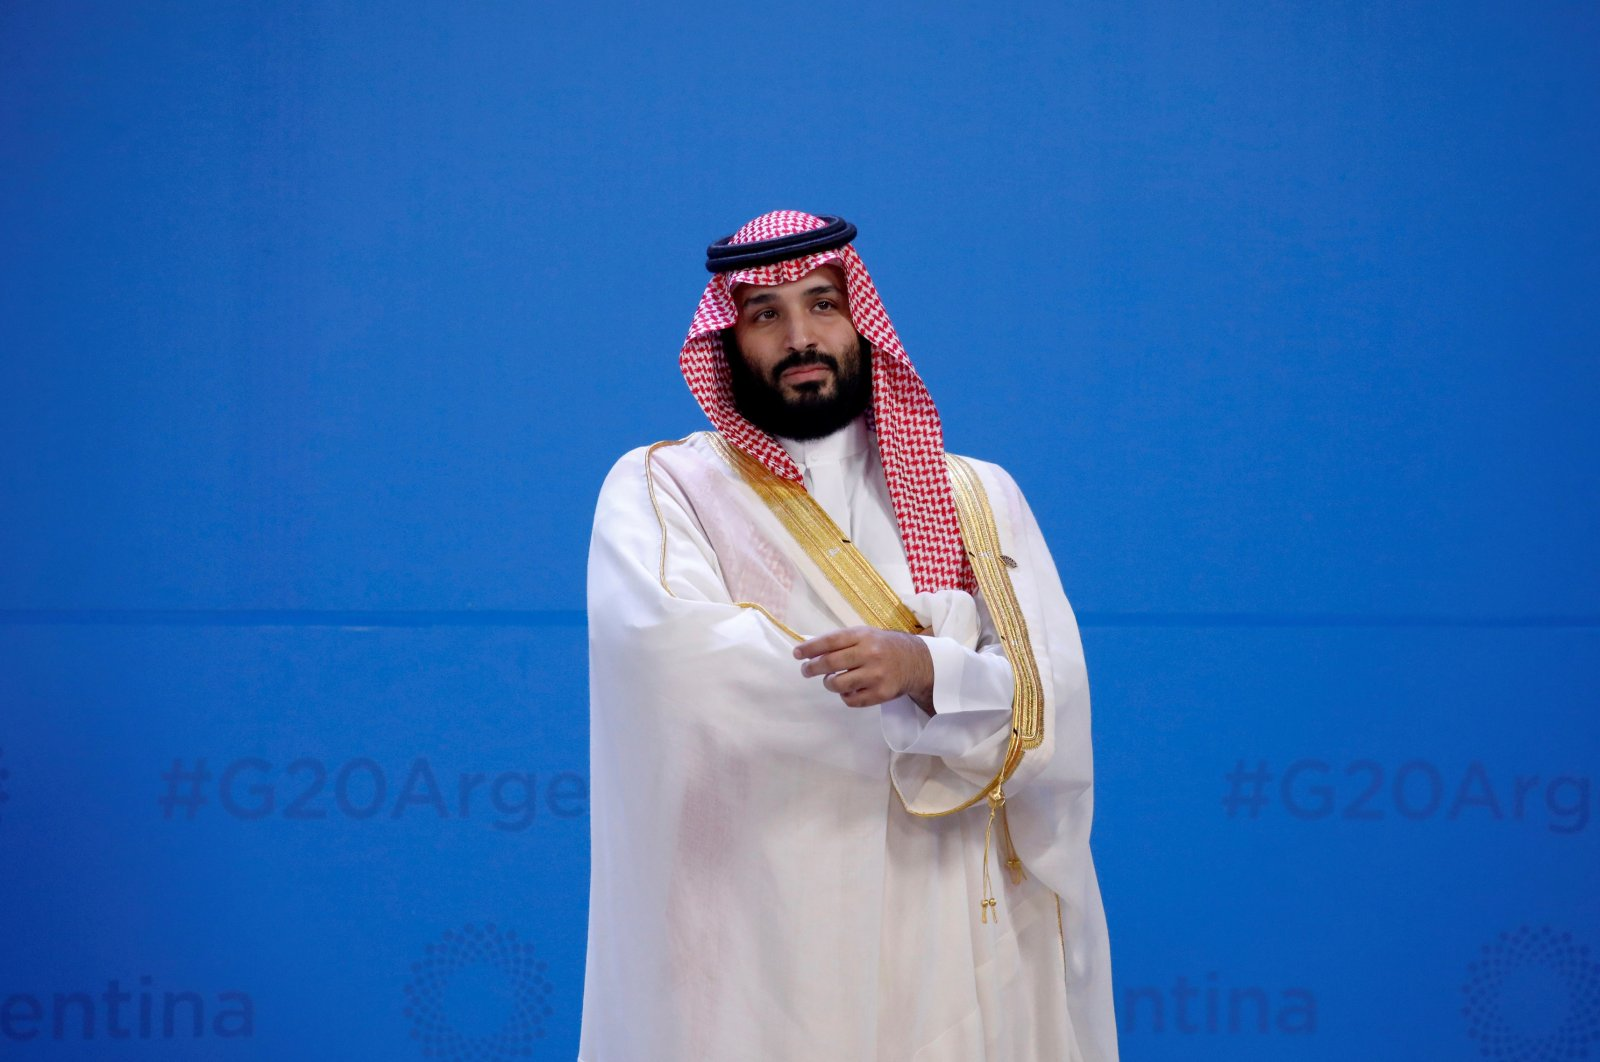 Saudi Arabia's Crown Prince Mohammed bin Salman waits for the family photo during the G20 summit, Buenos Aires, Nov. 30, 2018. (REUTERS Photo)